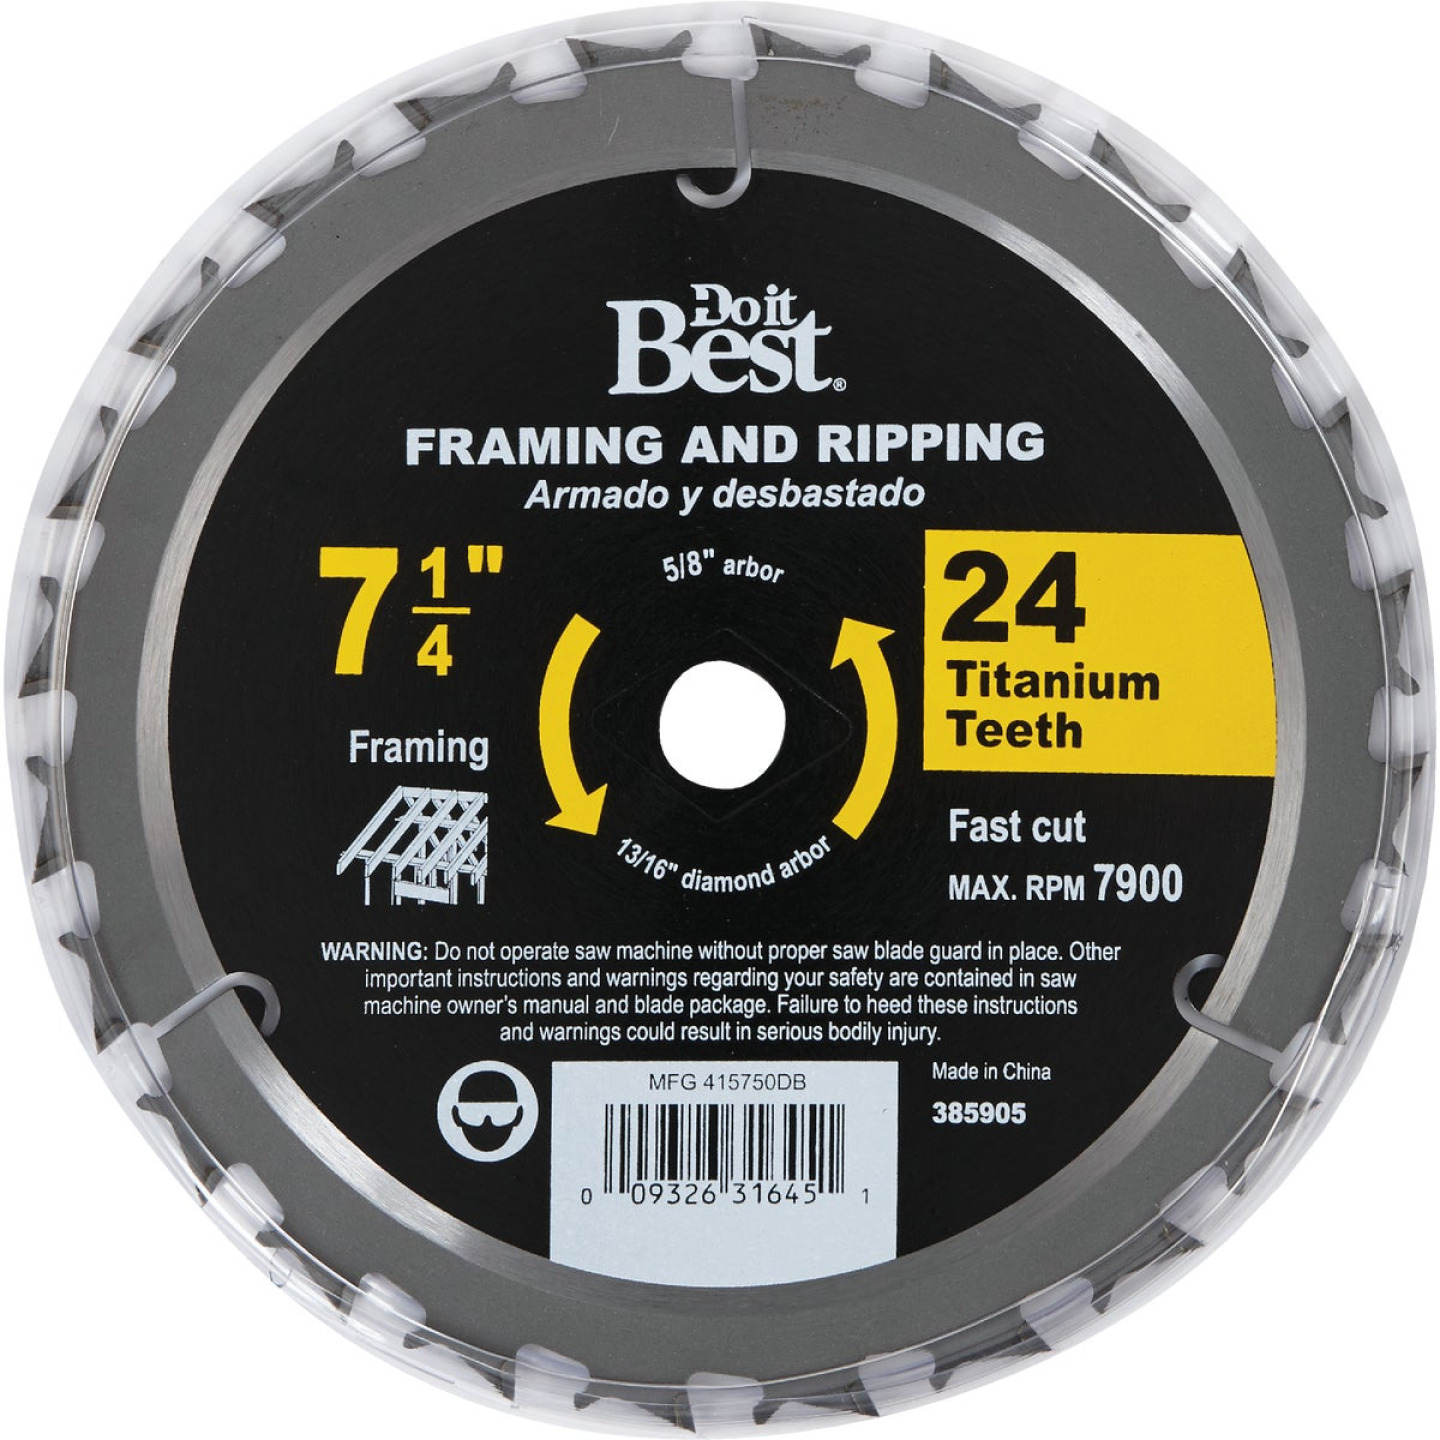 Do it Best Professional 7-1/4 In. 24-Tooth Framing & Ripping Circular Saw Blade, Bulk Image 2